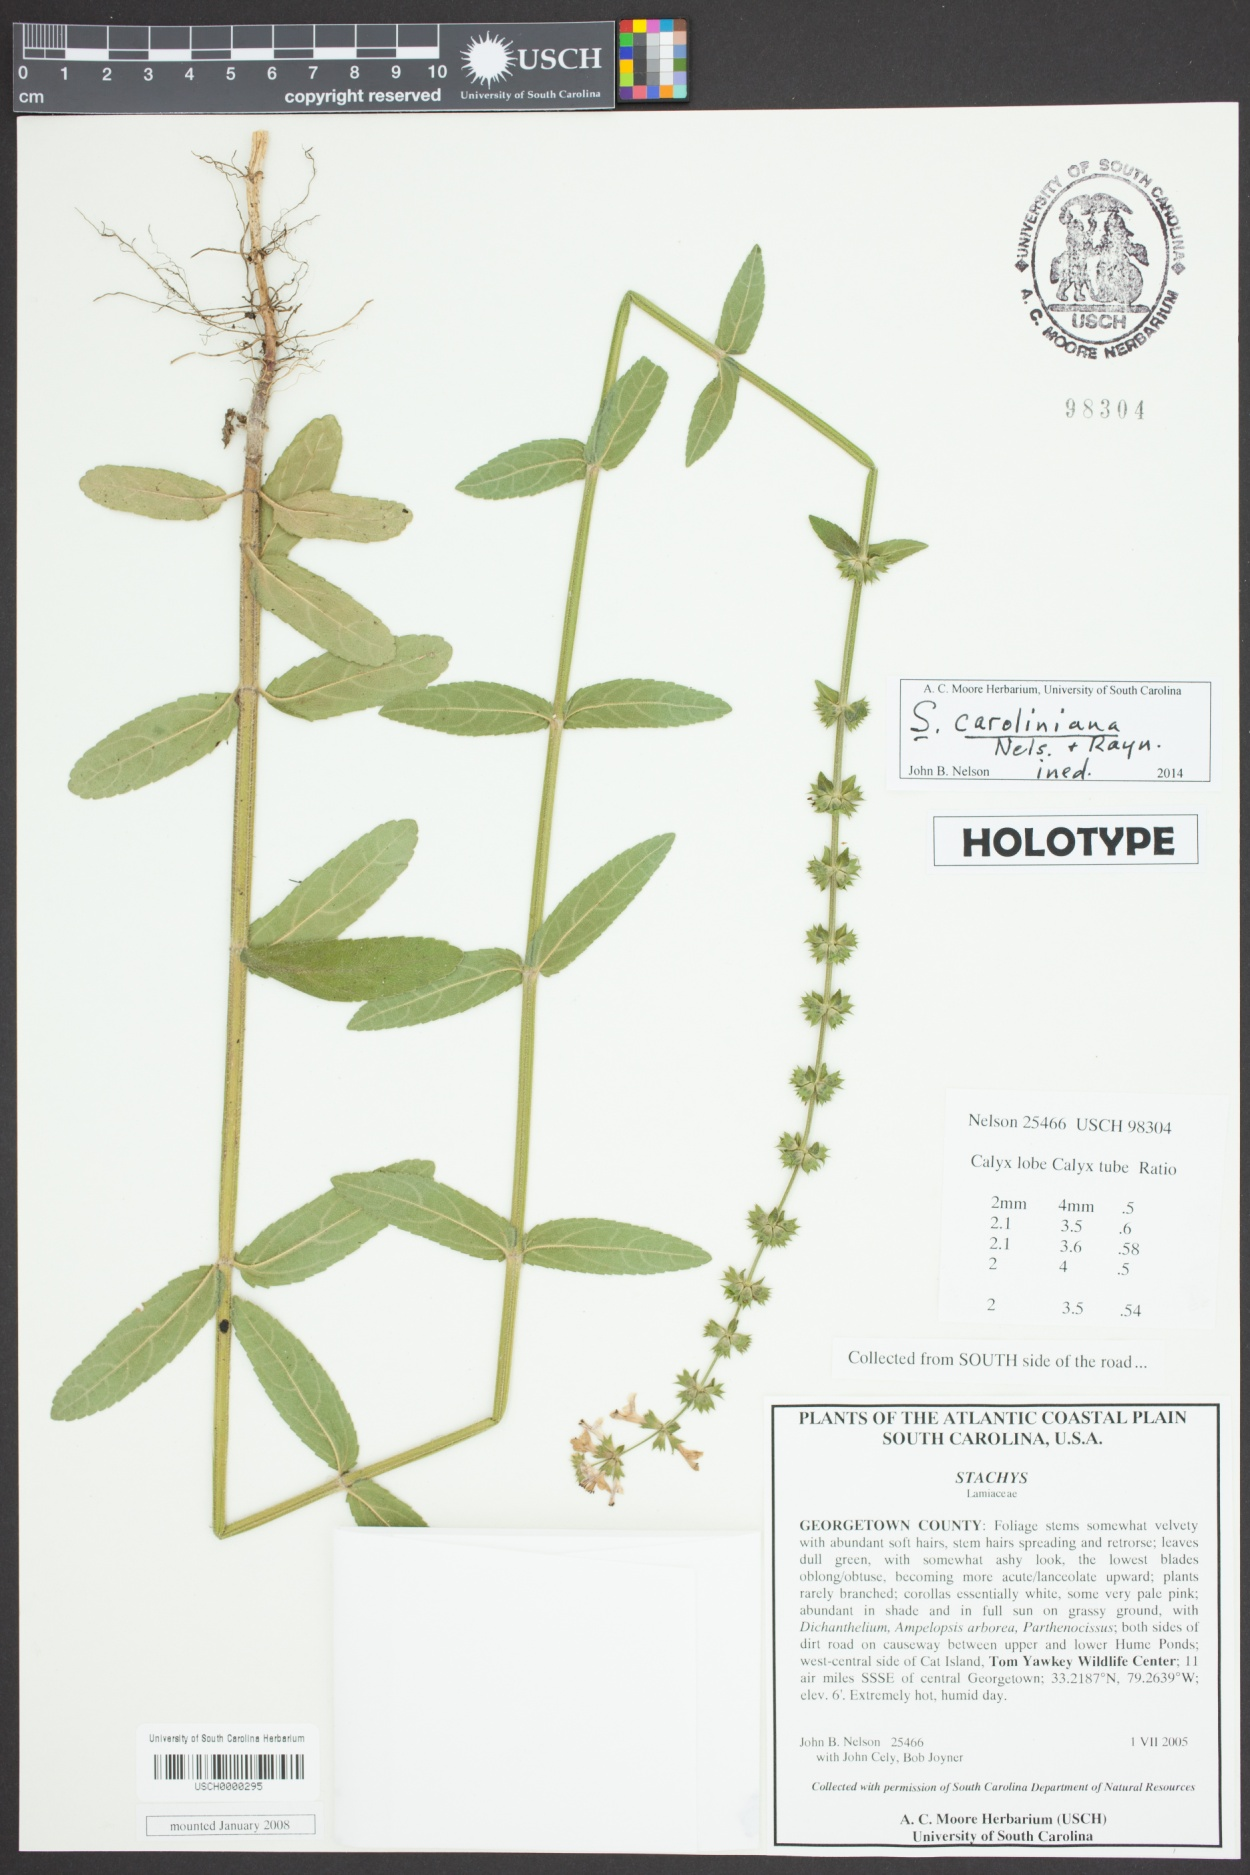 Stachys image